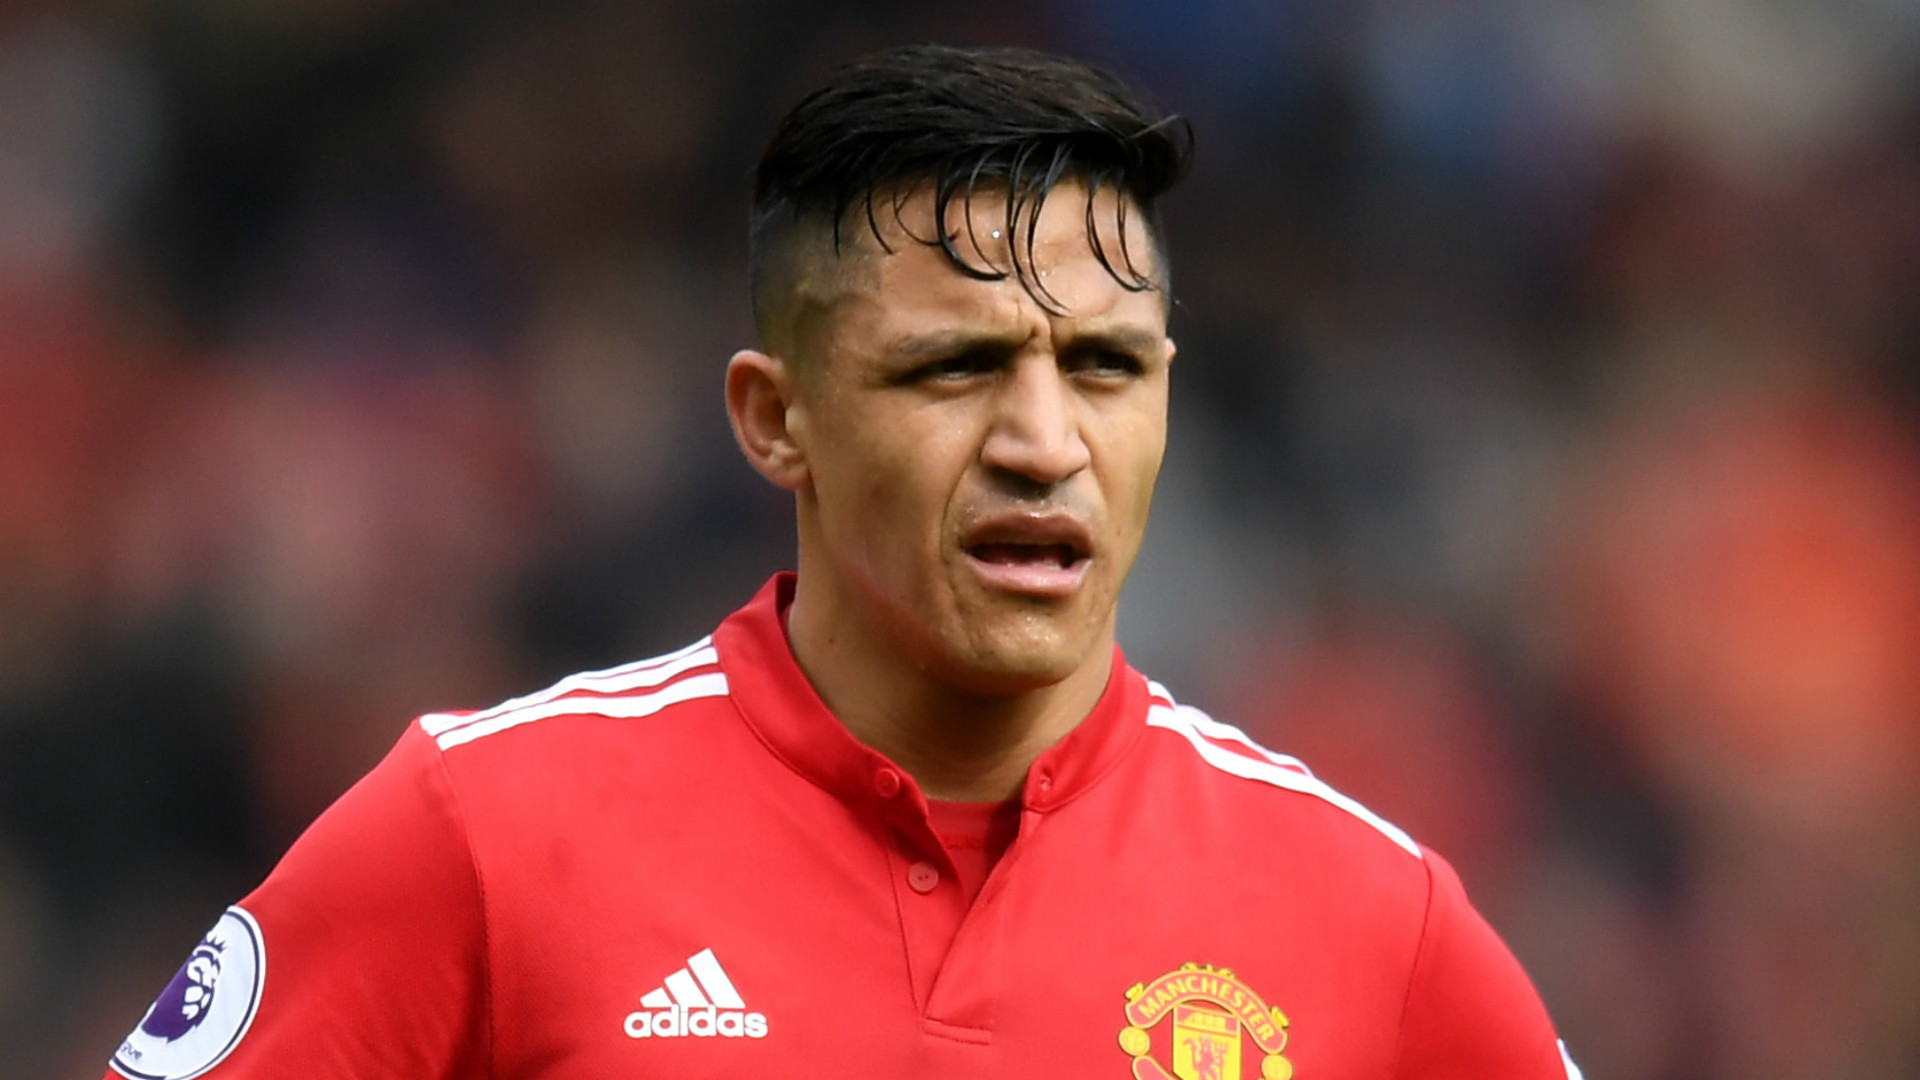 Manchester United still waiting for Sanchez to shine